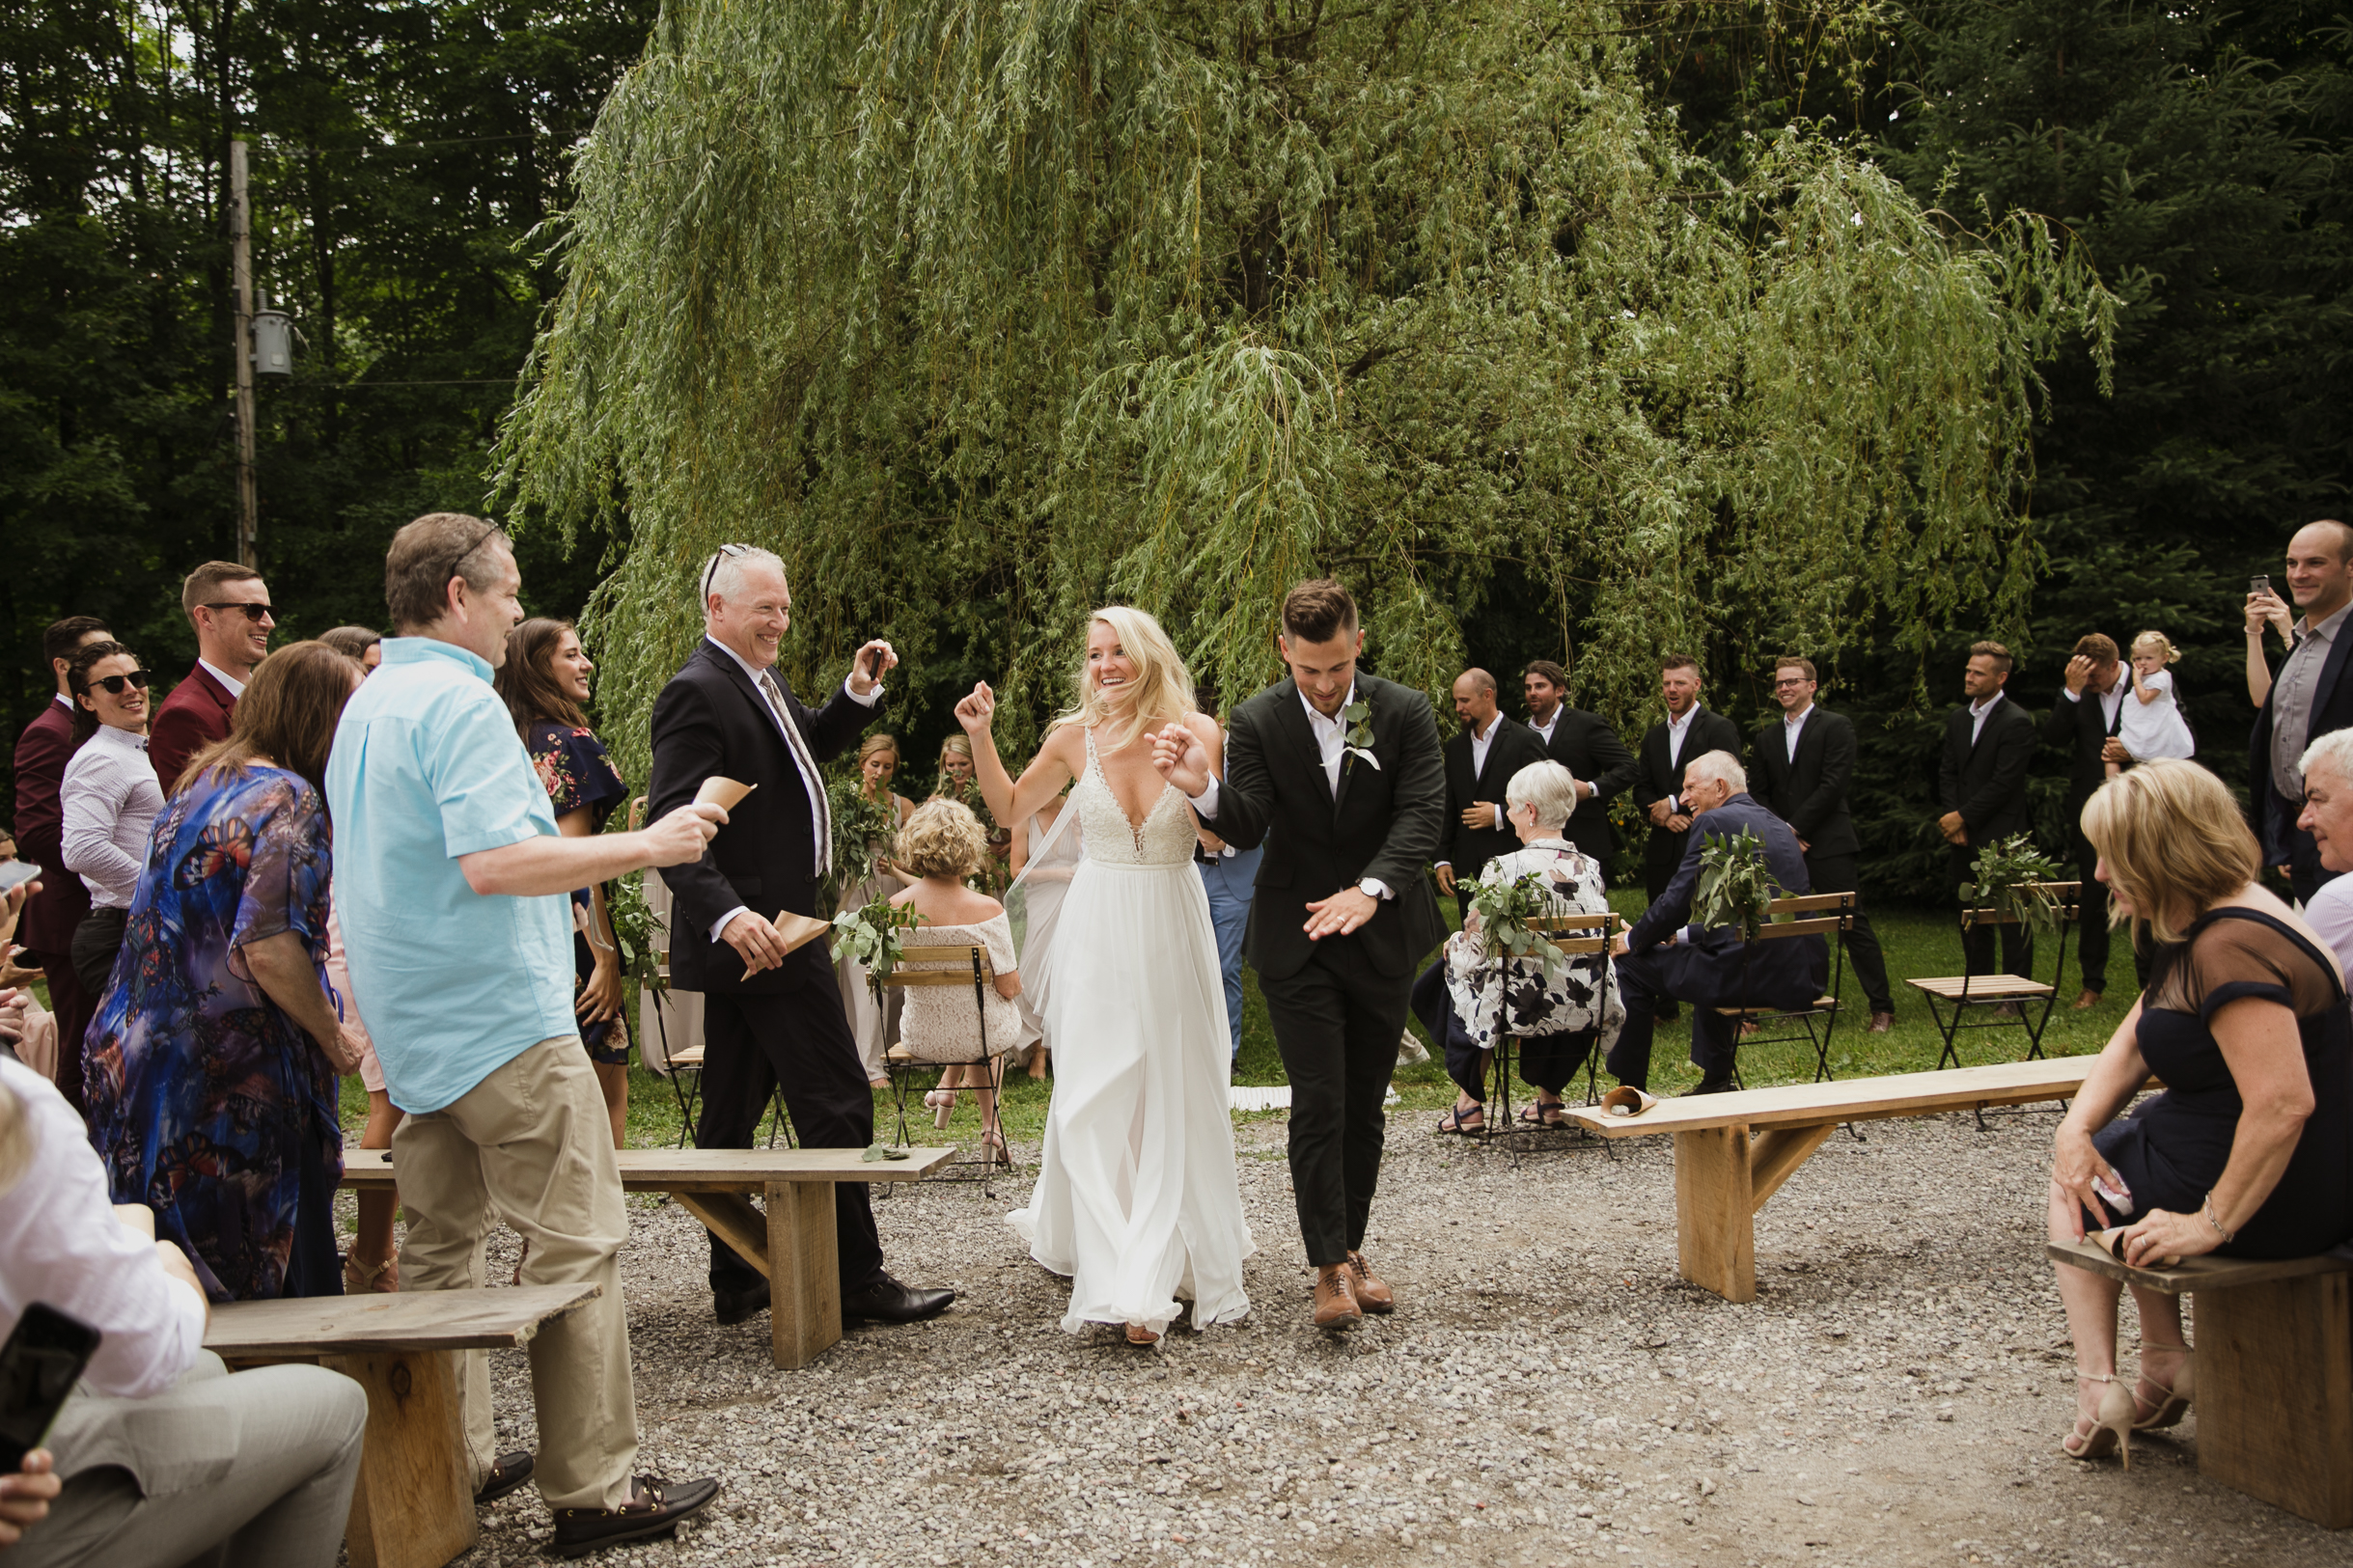 Wedding photo ceremony bride and groom celebrating down the aisle eucalyptus thrown at them by guests